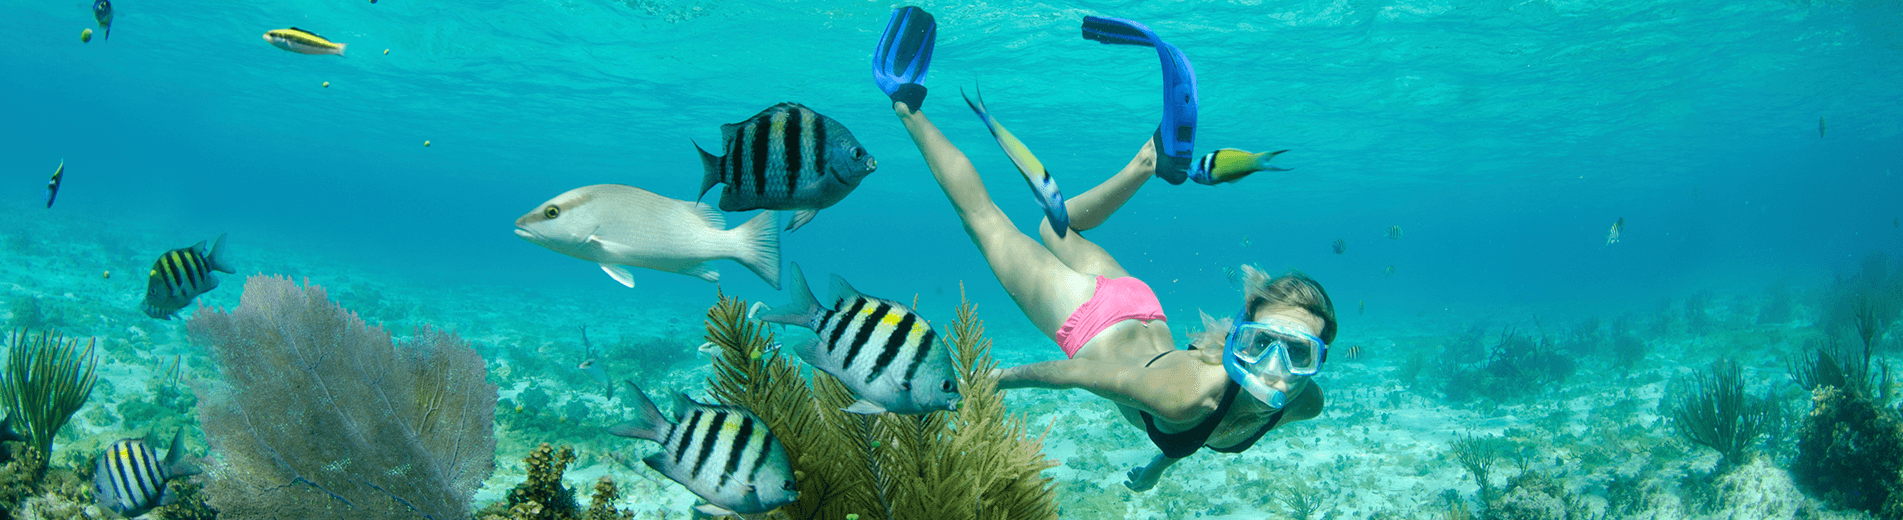 Experience some of the best snorkeling in the world thanks to the calm seas, clear water and beautiful coral reefs close to shore in the Cayman Islands.